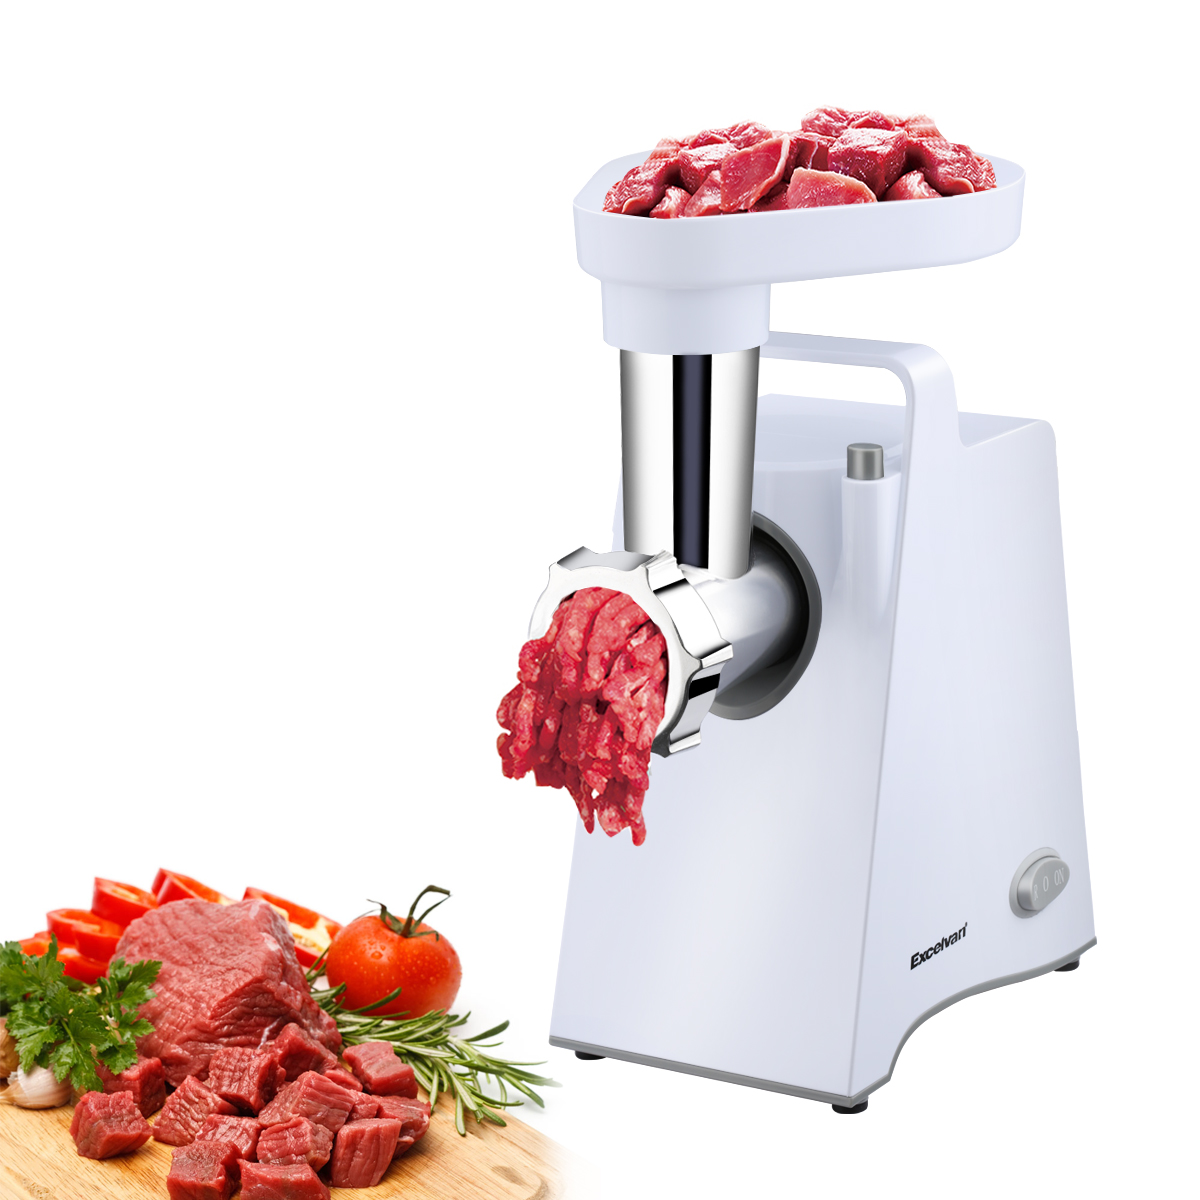 Excelvan Multifunctional Electric Meat Grinder Mincer 600W Stainless Steel Cutting Blade, 3 Grinding Plates, Kubbe & Sausage Stuff Maker and Pusher Attachments, Home Kitchen Tool (White)